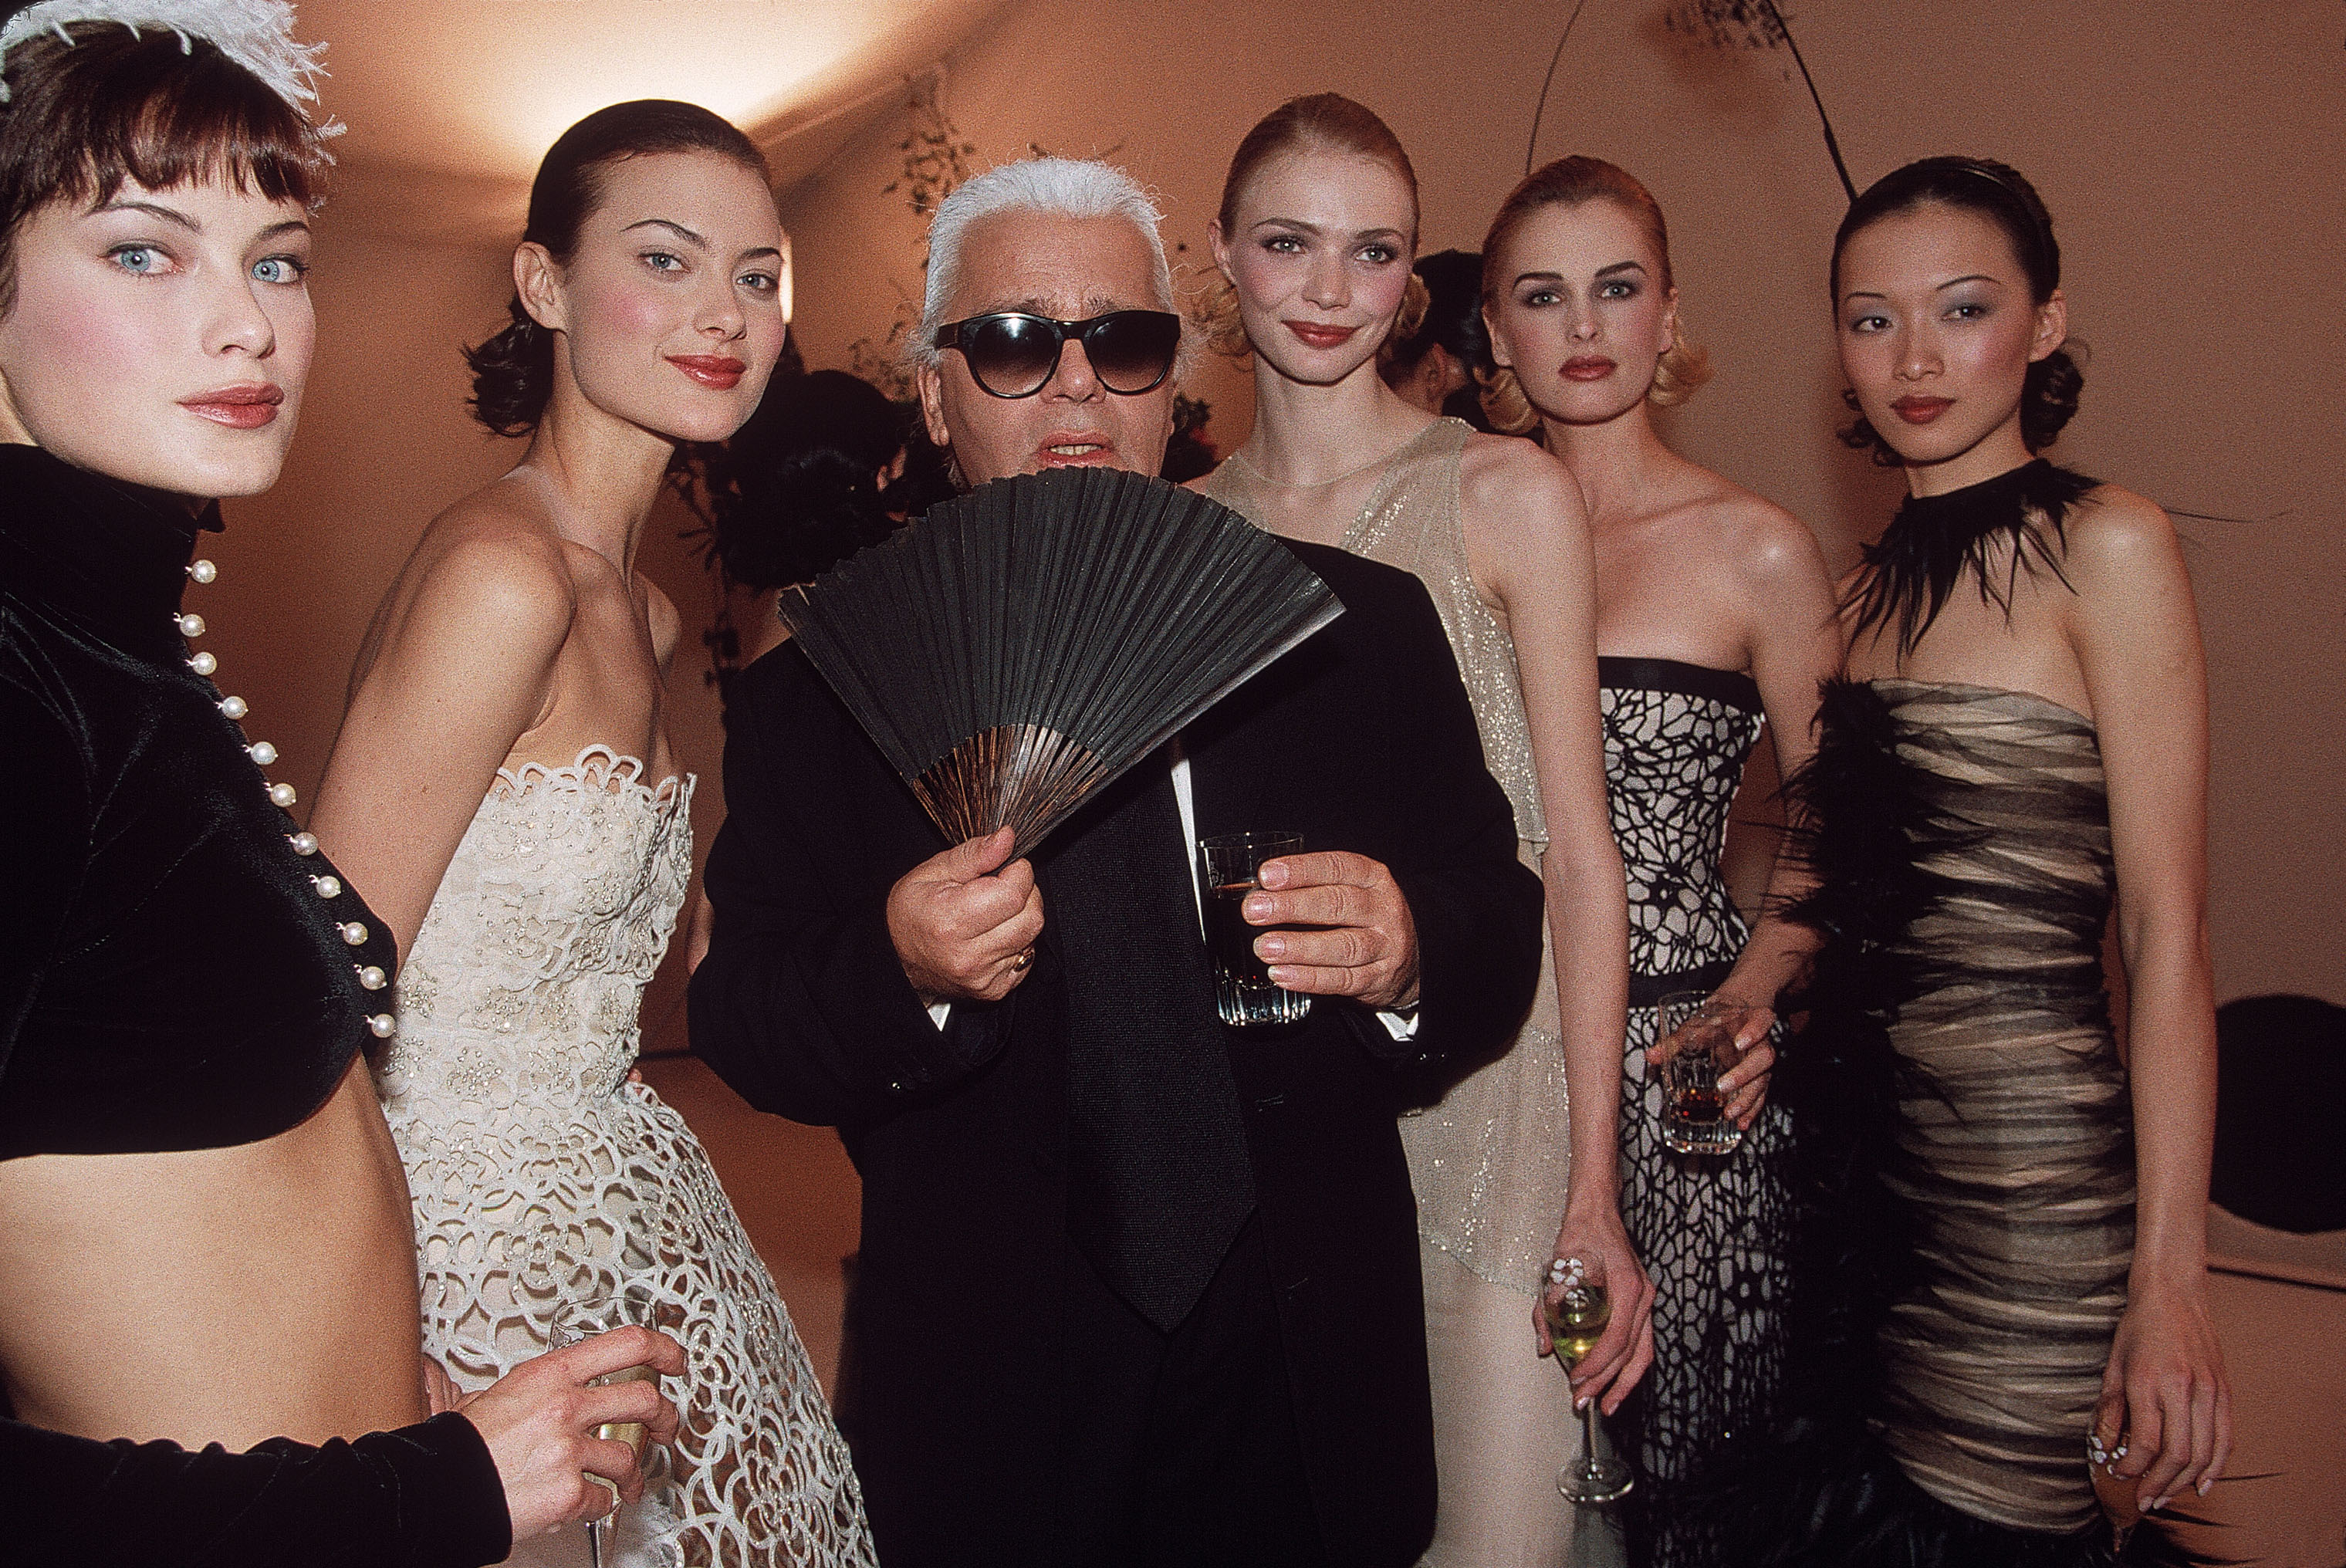 Karl Lagerfeld at the Chanel Summer 1997 Collection fashion show.